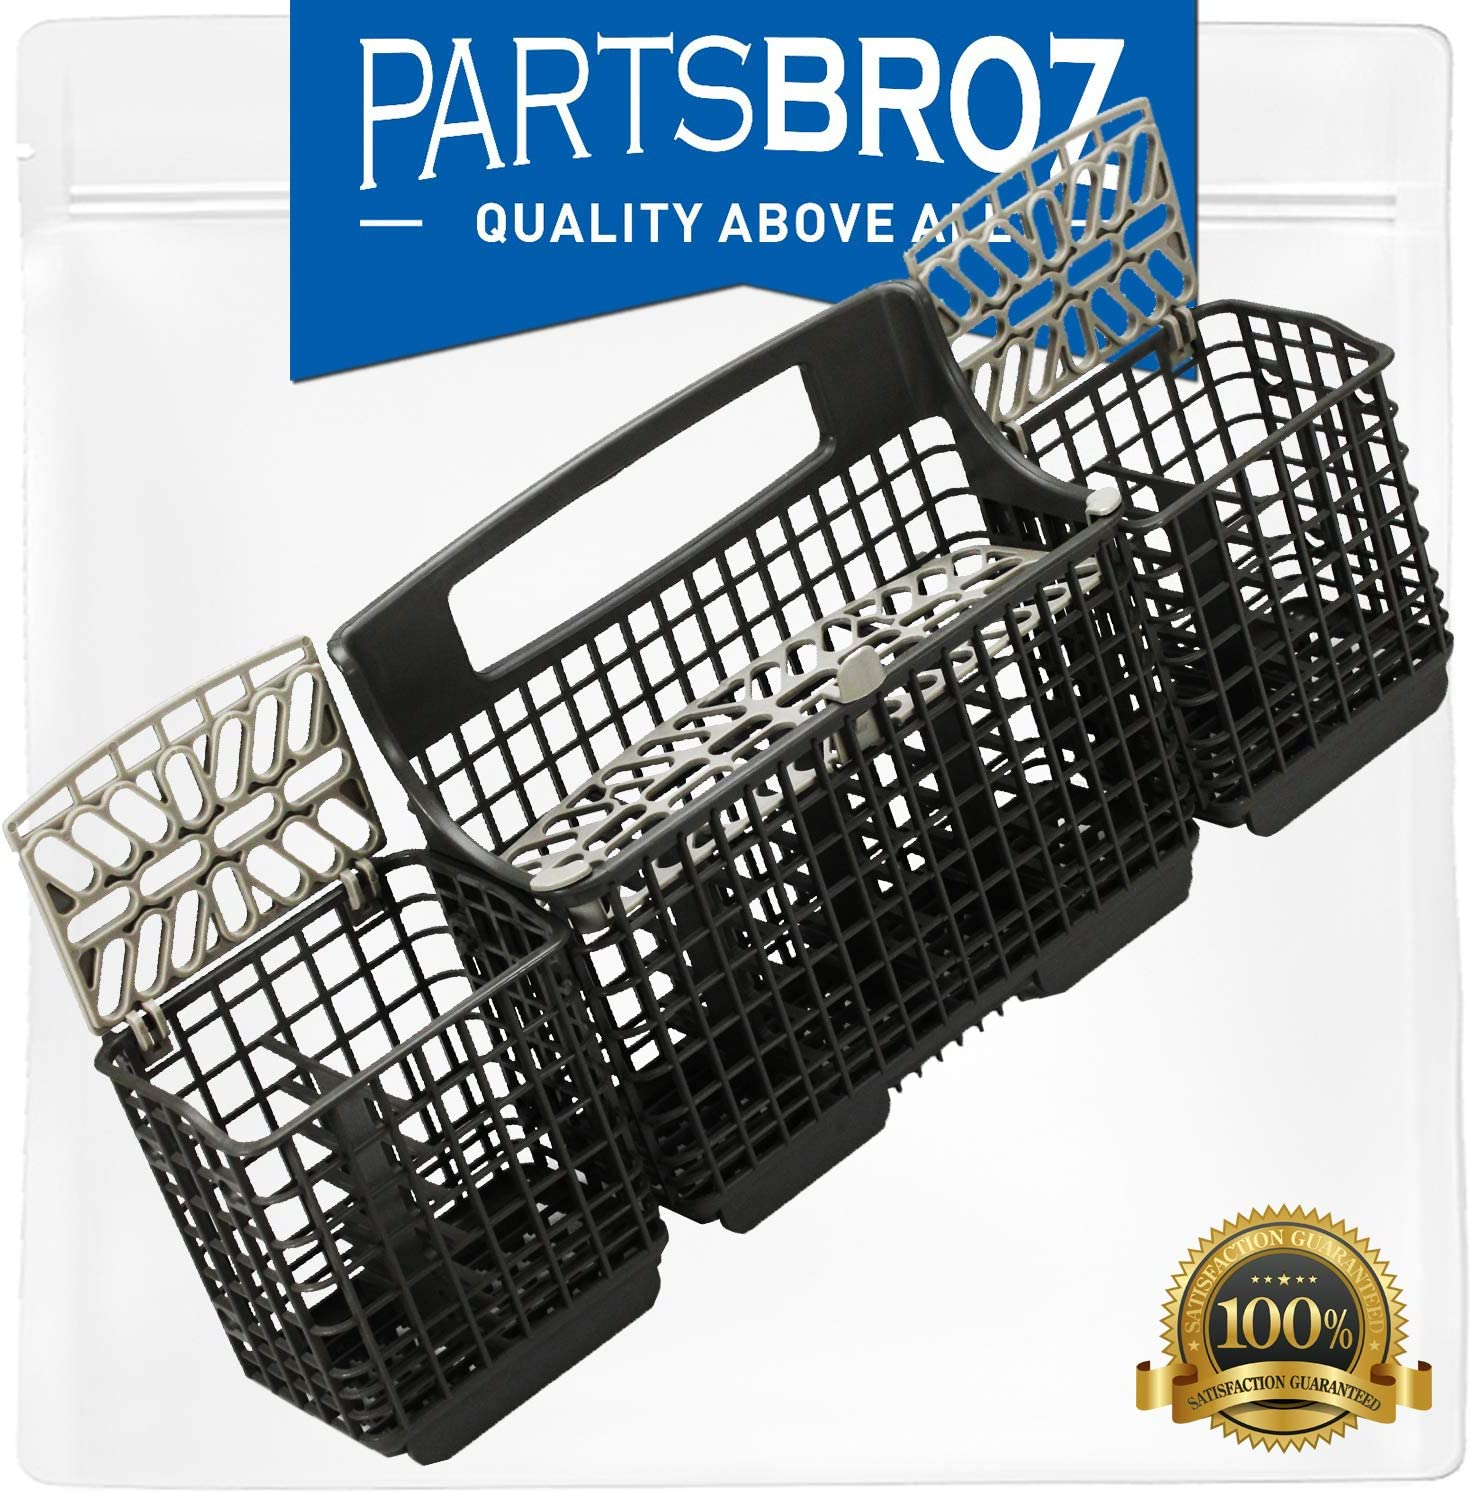 W10807920 Silverware Basket by PartsBroz - Compatible with Whirlpool Dishwashers - Replaces AP5983812, 8562086, WP8562080, 8562080, 8562084, 8562085, W10082877, 3380781, 3383588, 3384587, 8268856